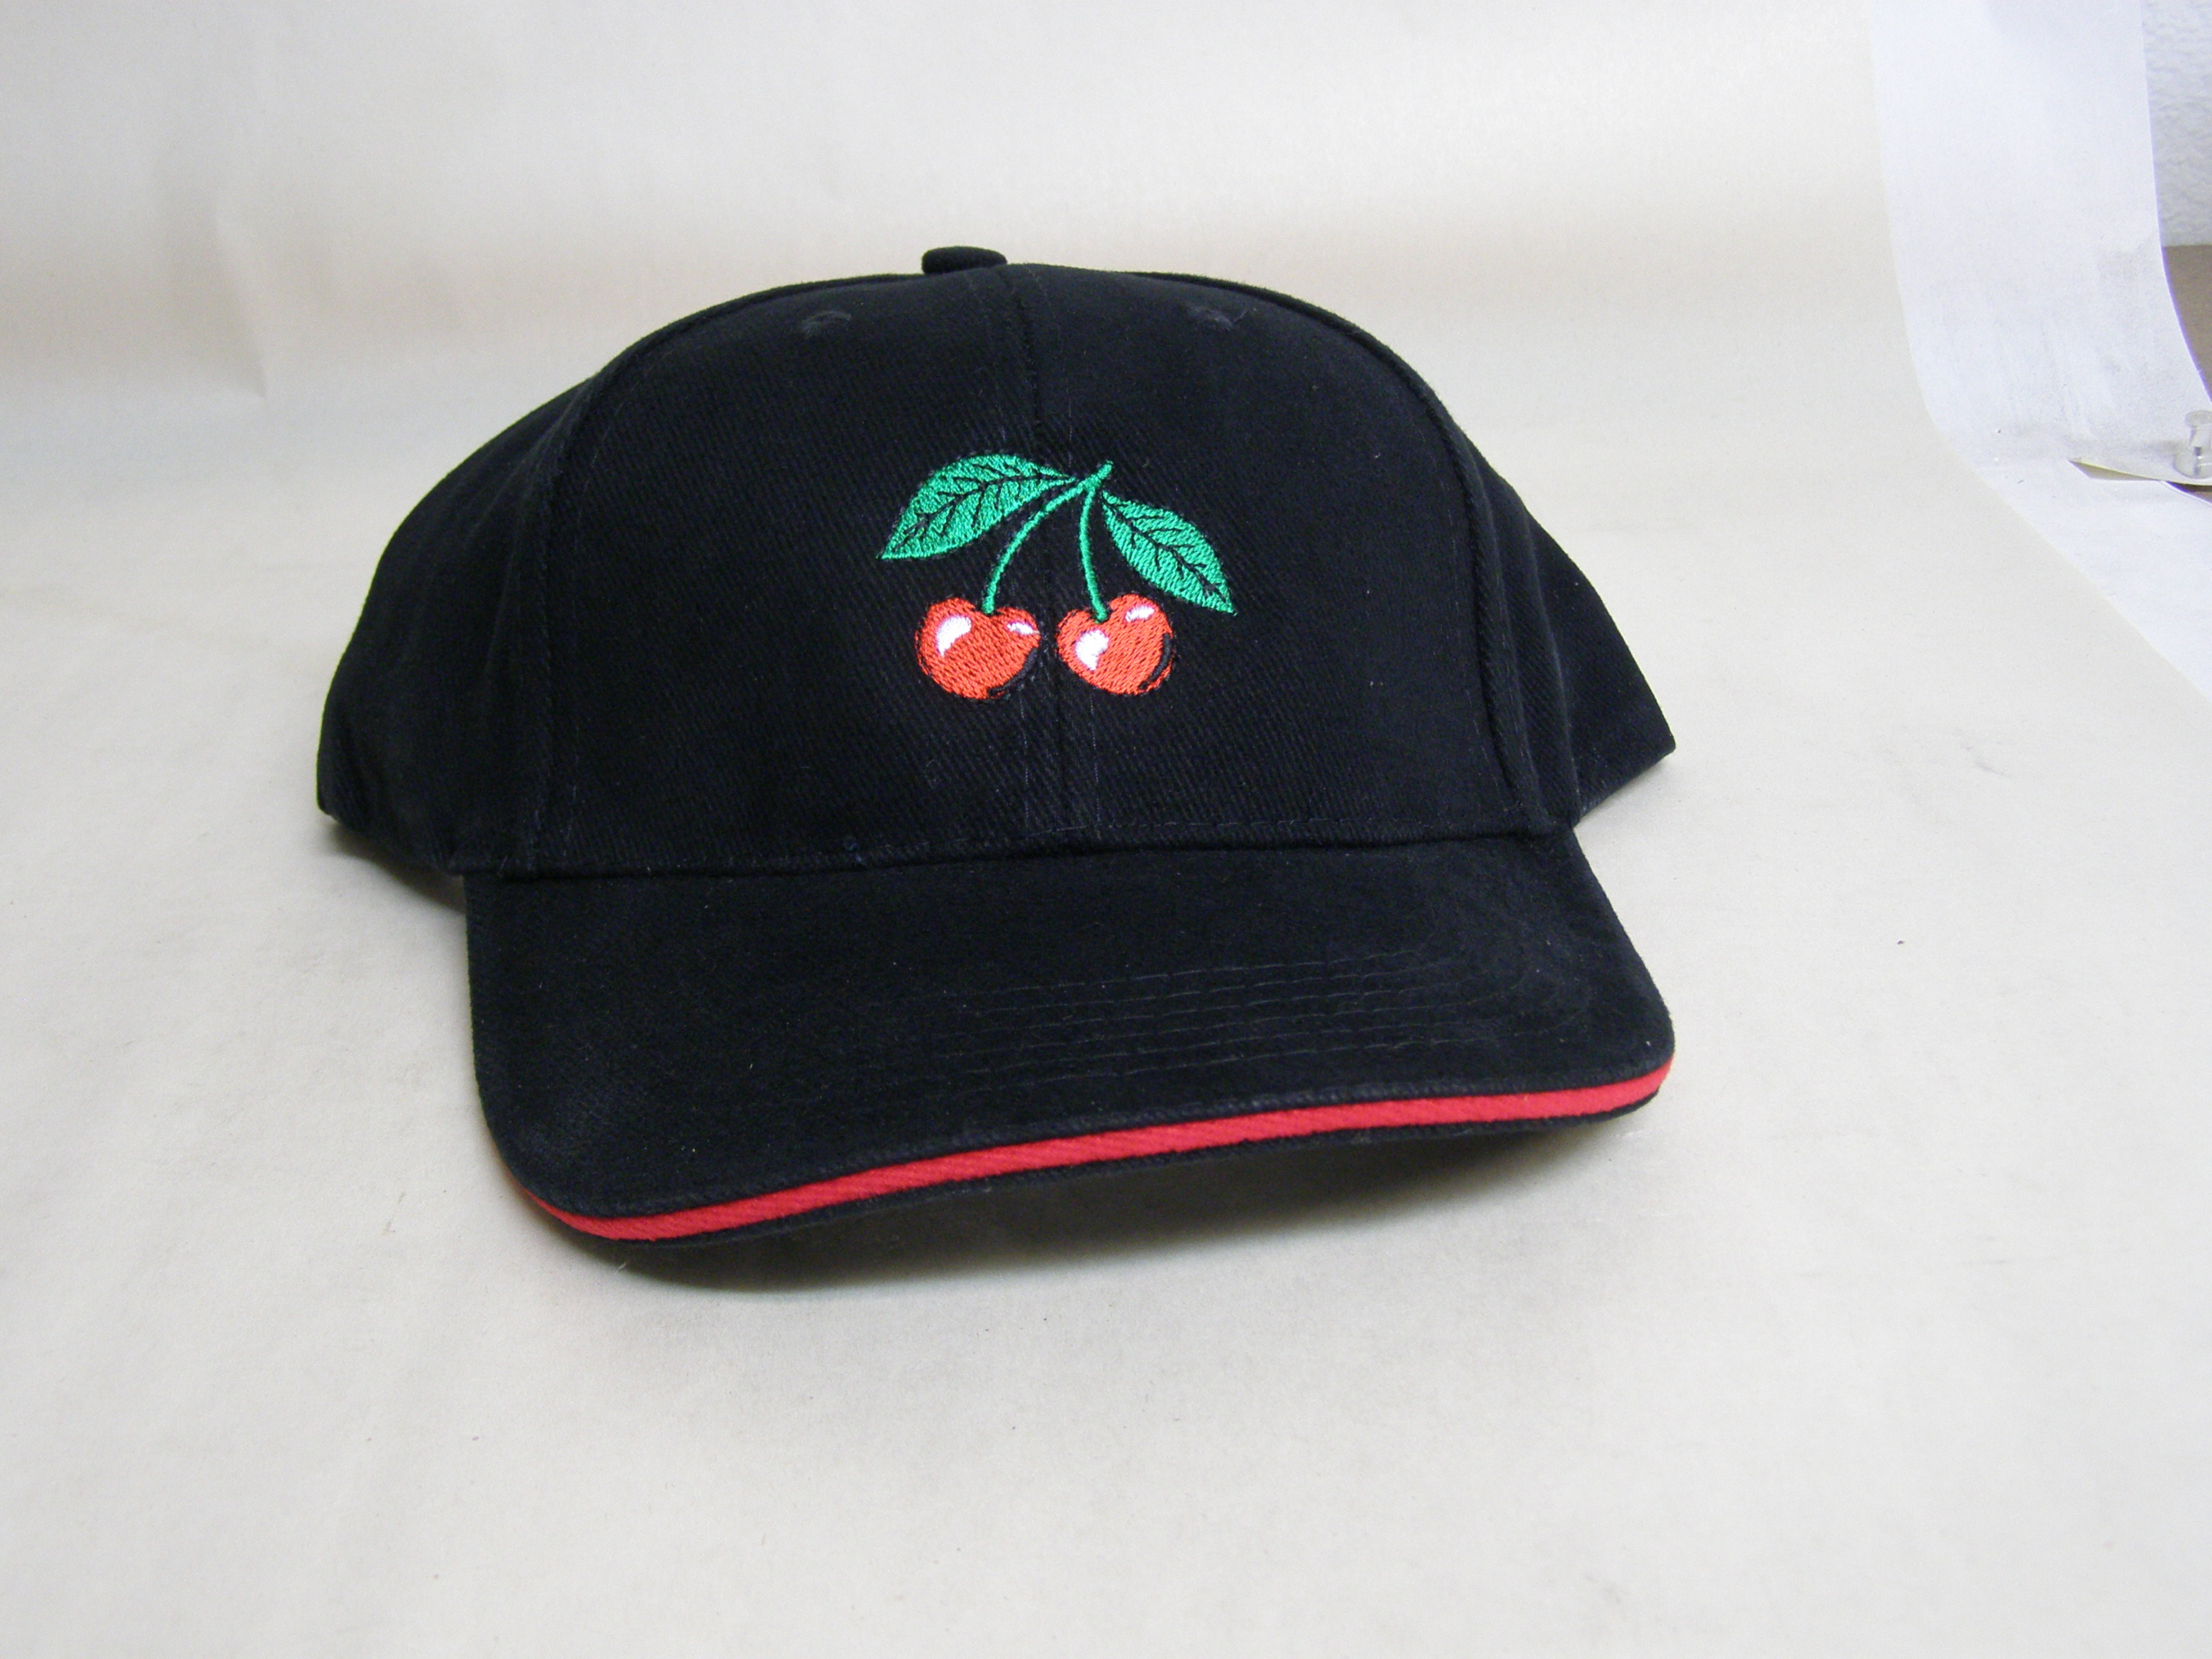 Two Cherries BaseBall Cap 527-7300 524-7300